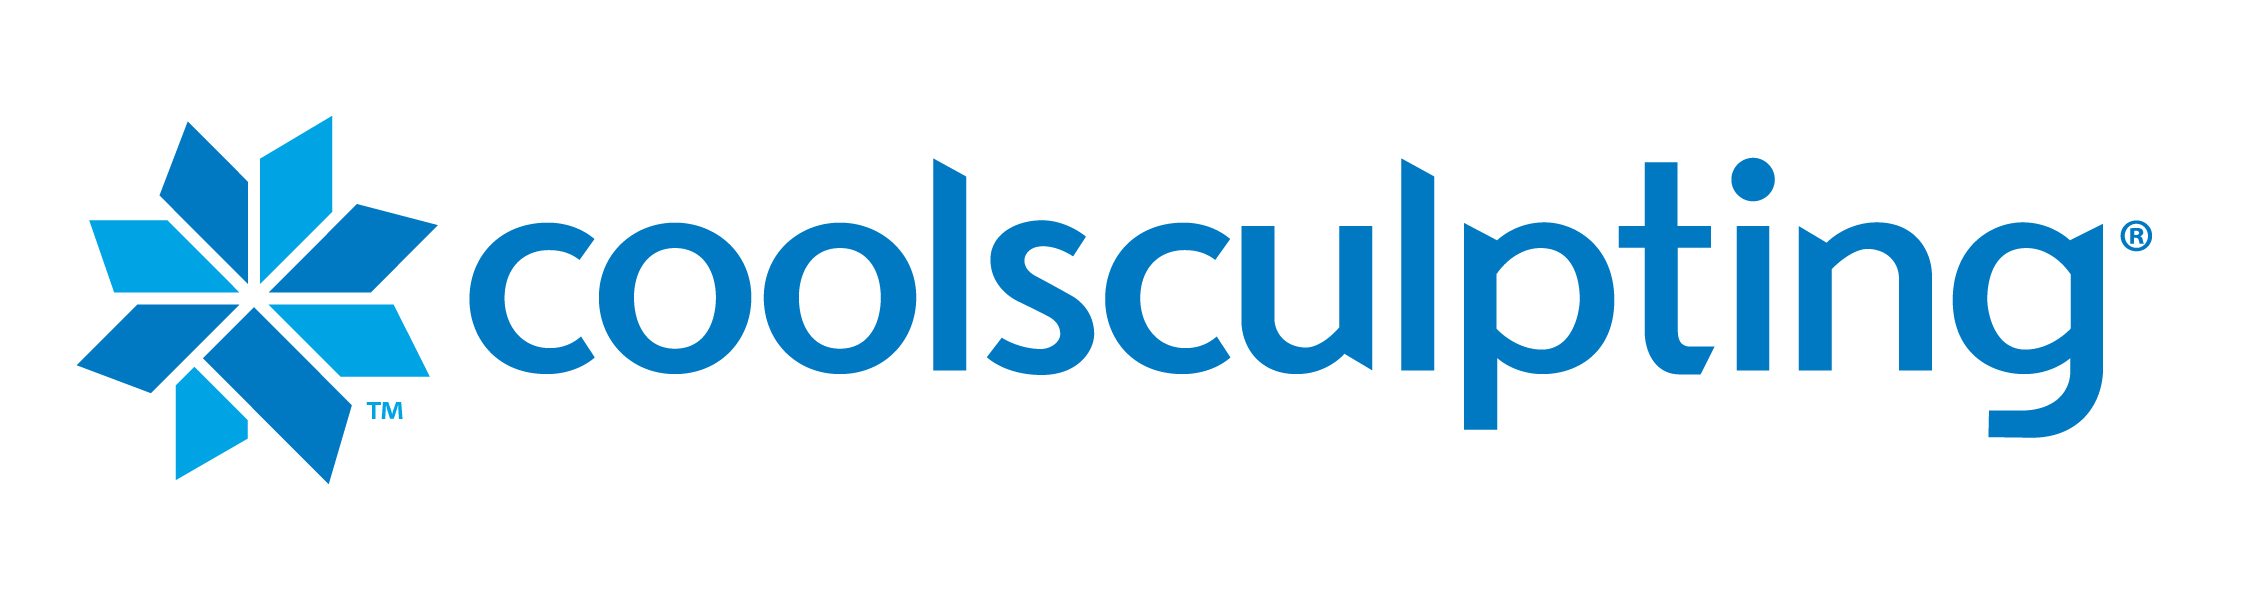 CoolSculpting-logo_official